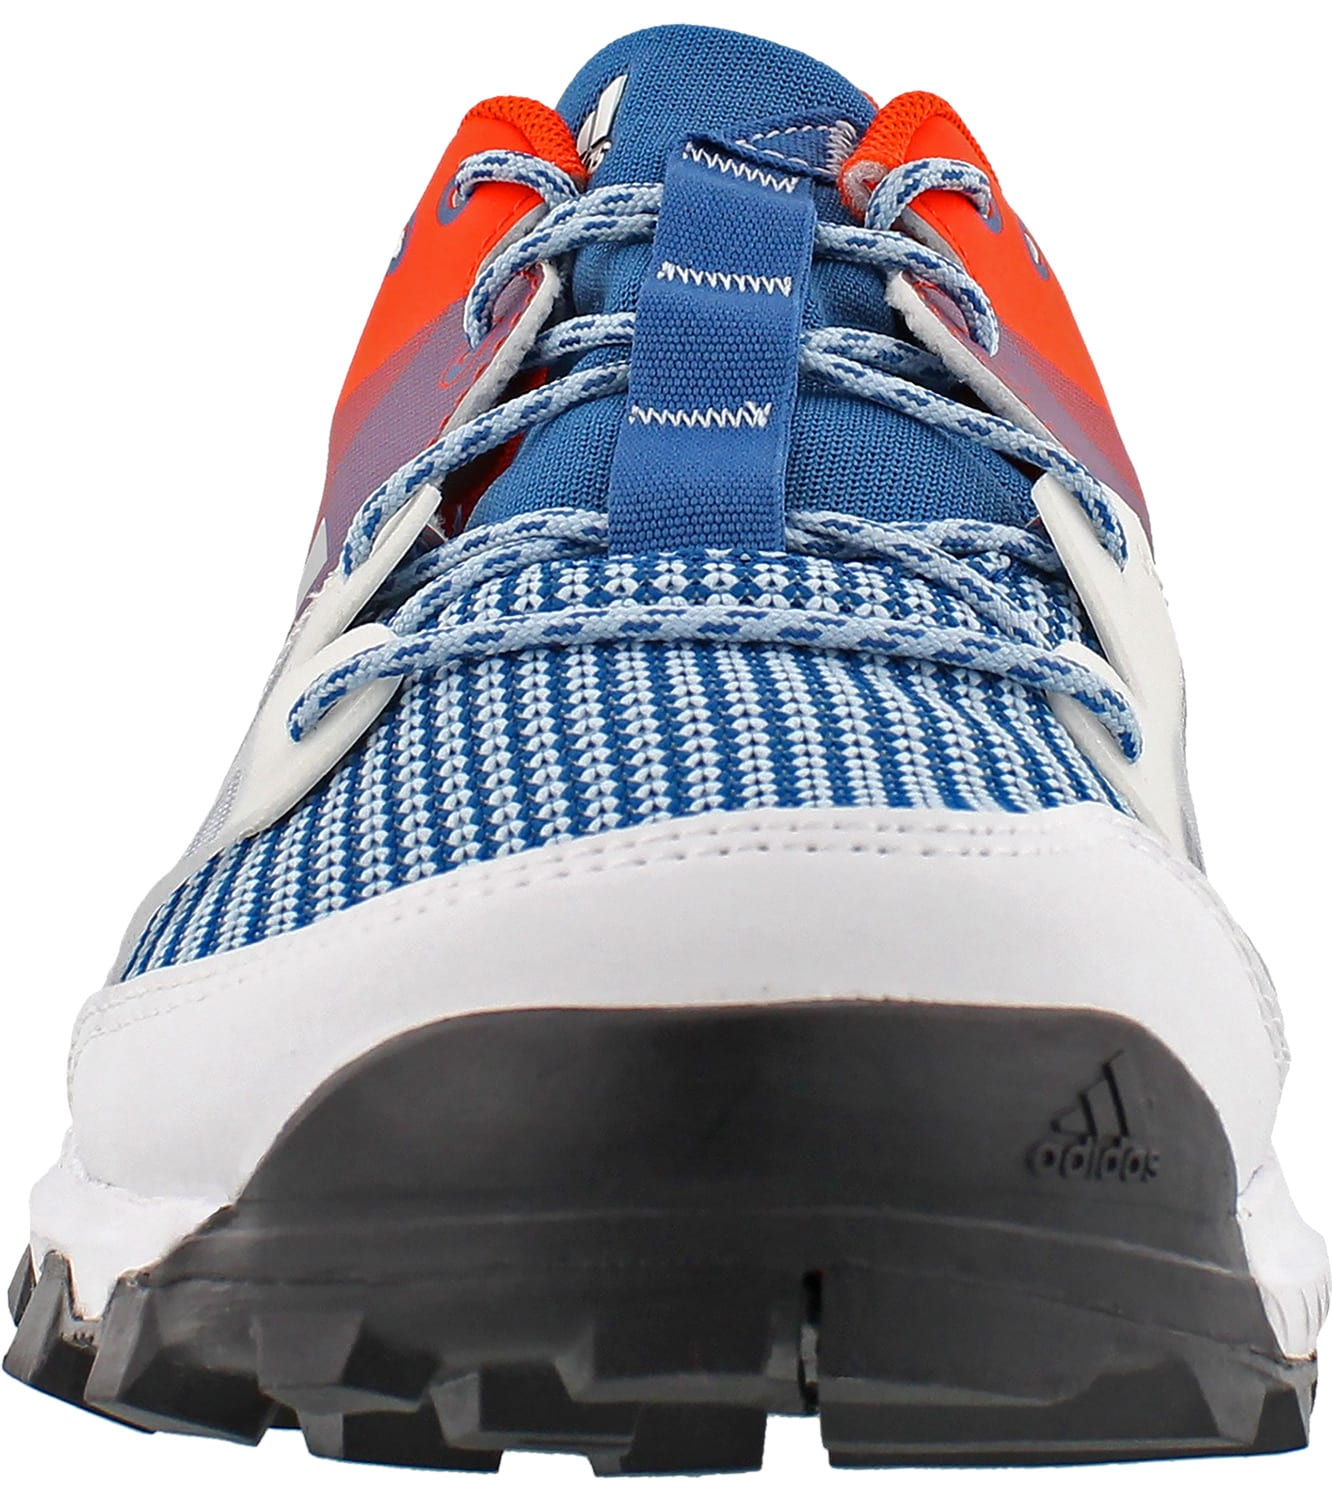 best service 61147 4a6f2 Adidas Kanadia 8 TR Hiking Shoes - thumbnail 4